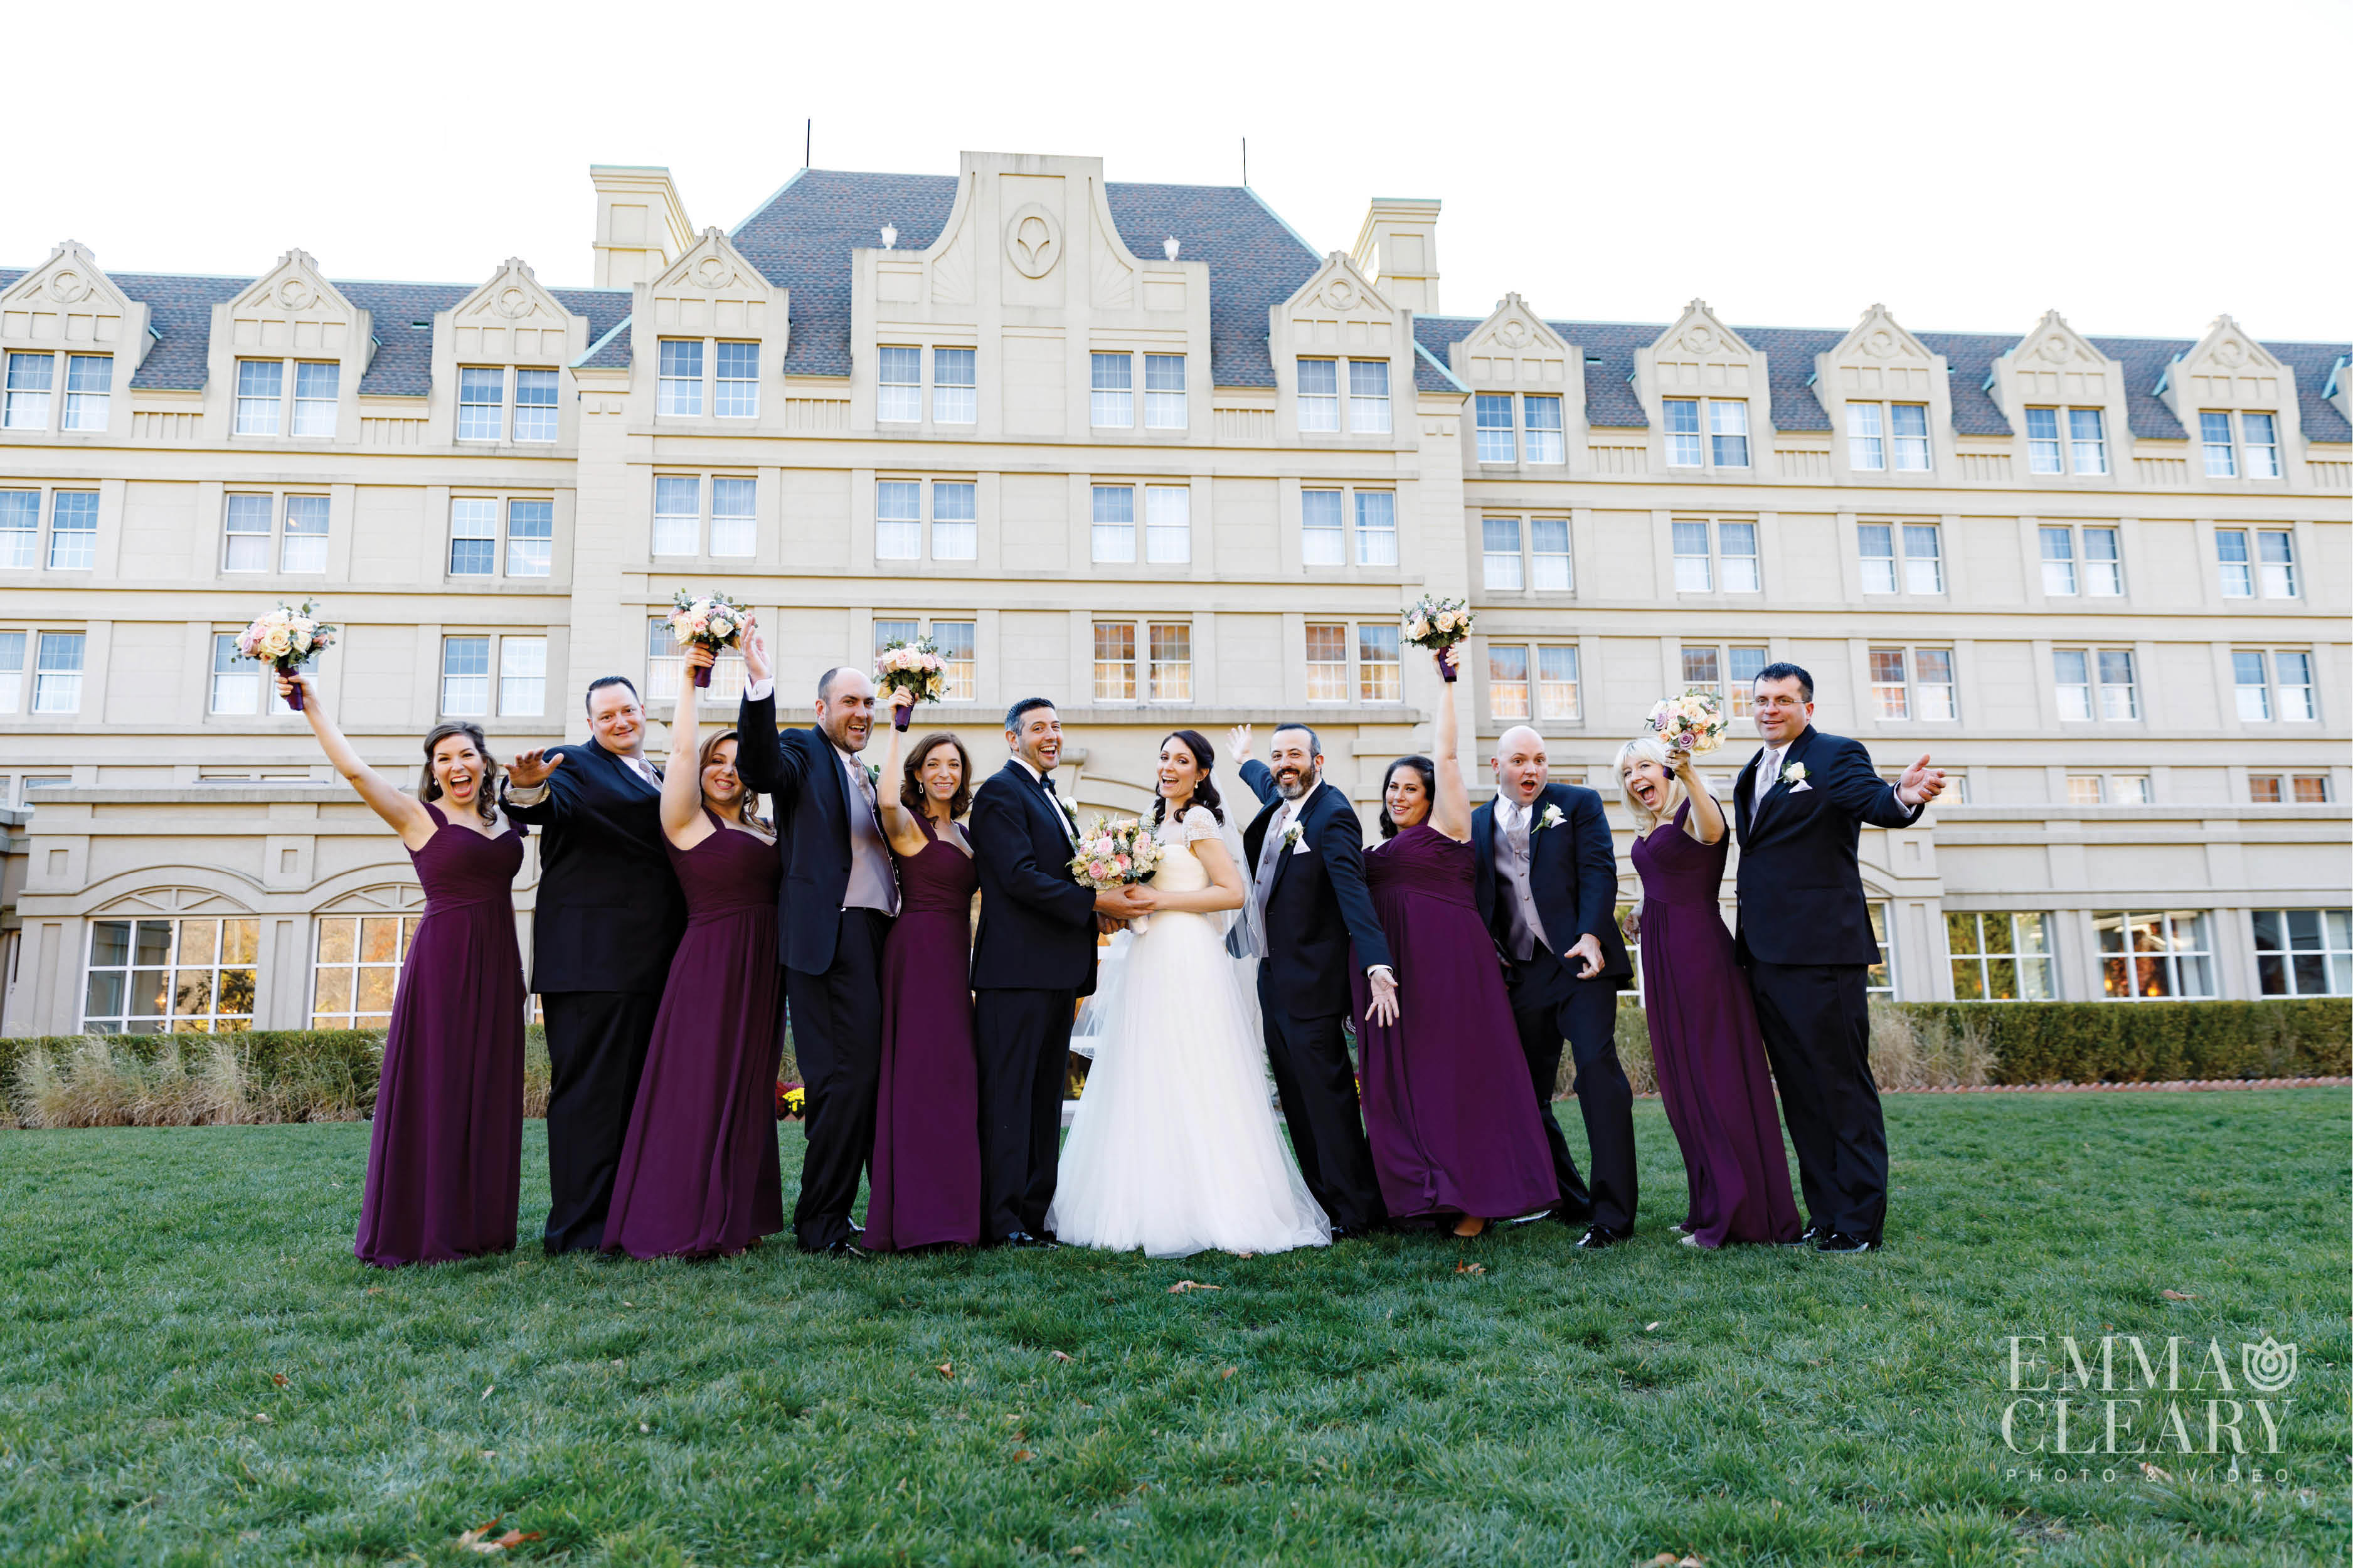 Emma_cleary_photography Hilton pearl river NY wedding12